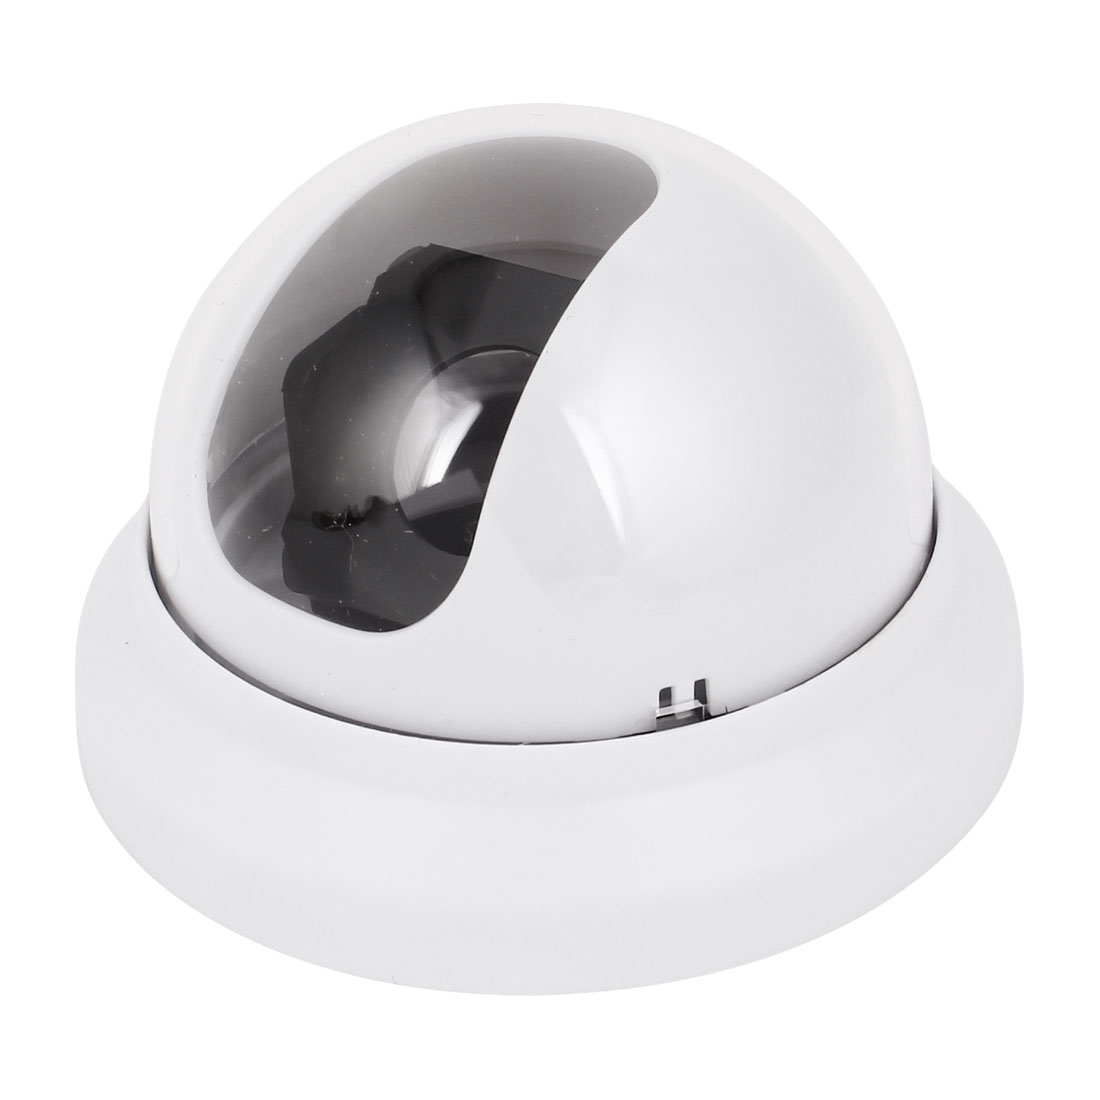 White Gray Plastic CCTV Security Dome Camera Housing Case Shell Cover